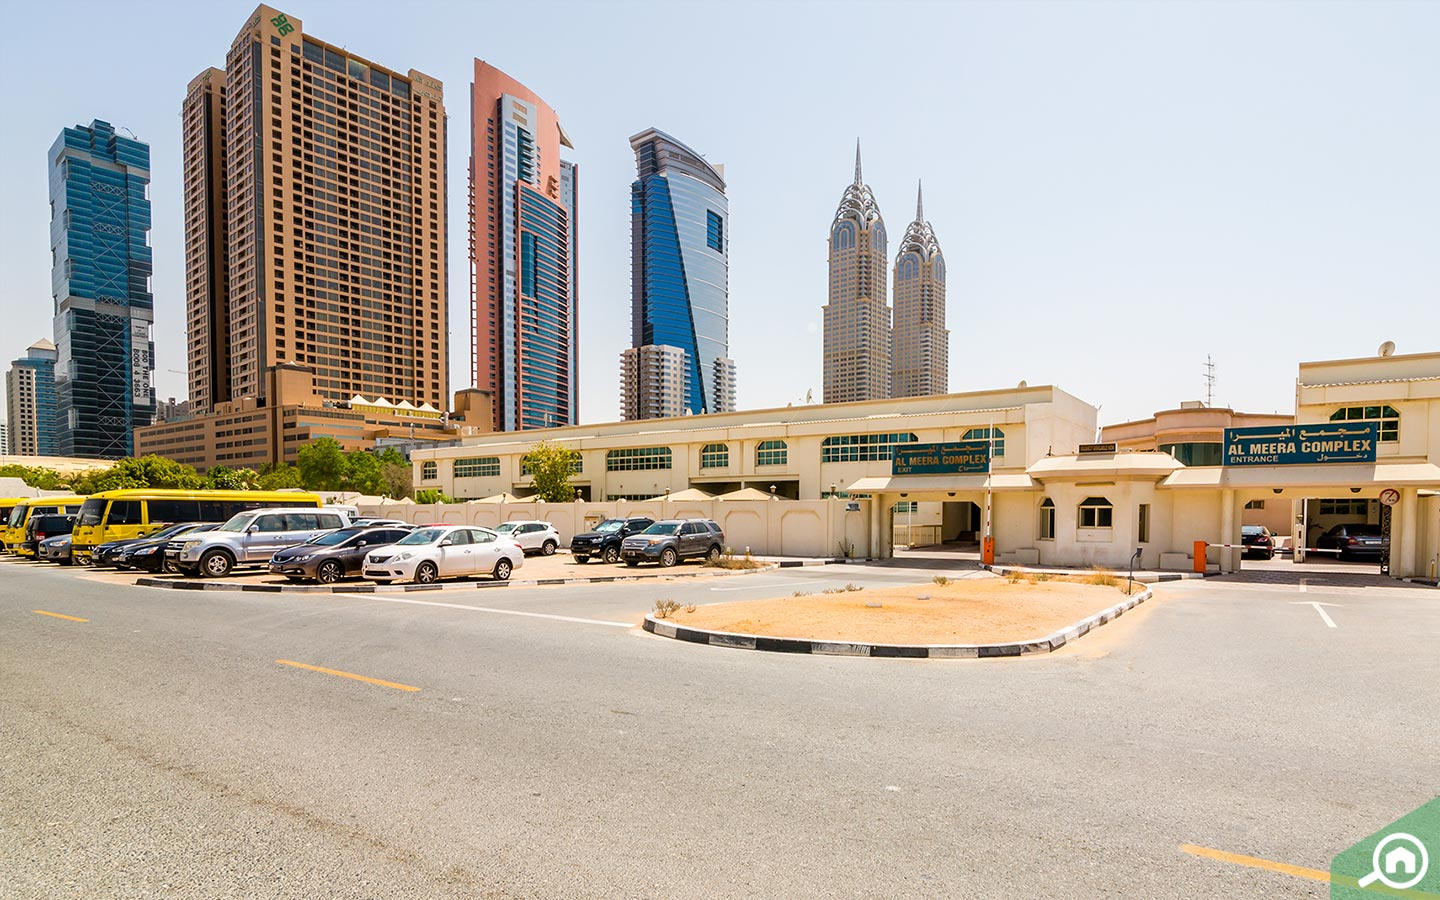 Cars Parked in the Dubai Internet City Parking